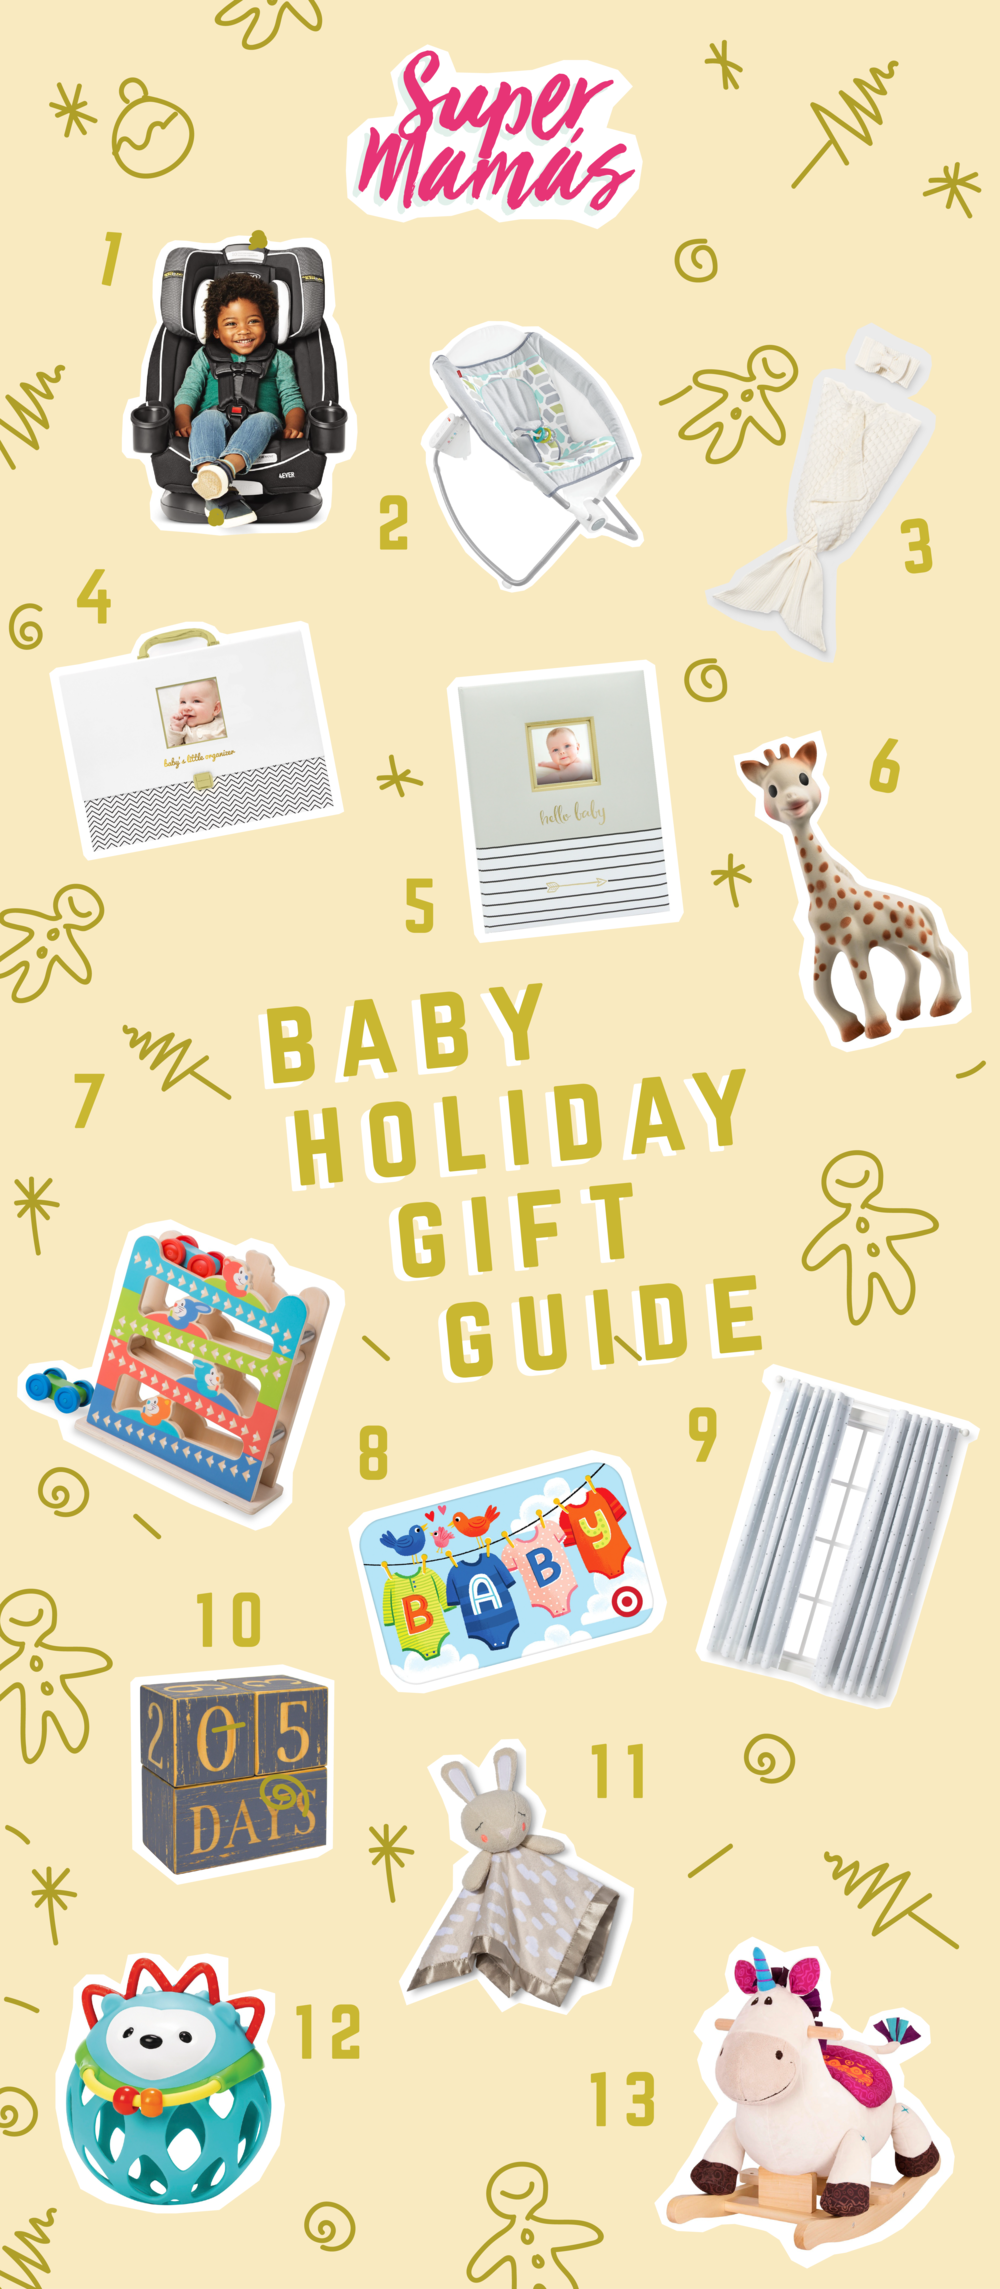 GUIFT_GUIDE_BABY-03 (1).png